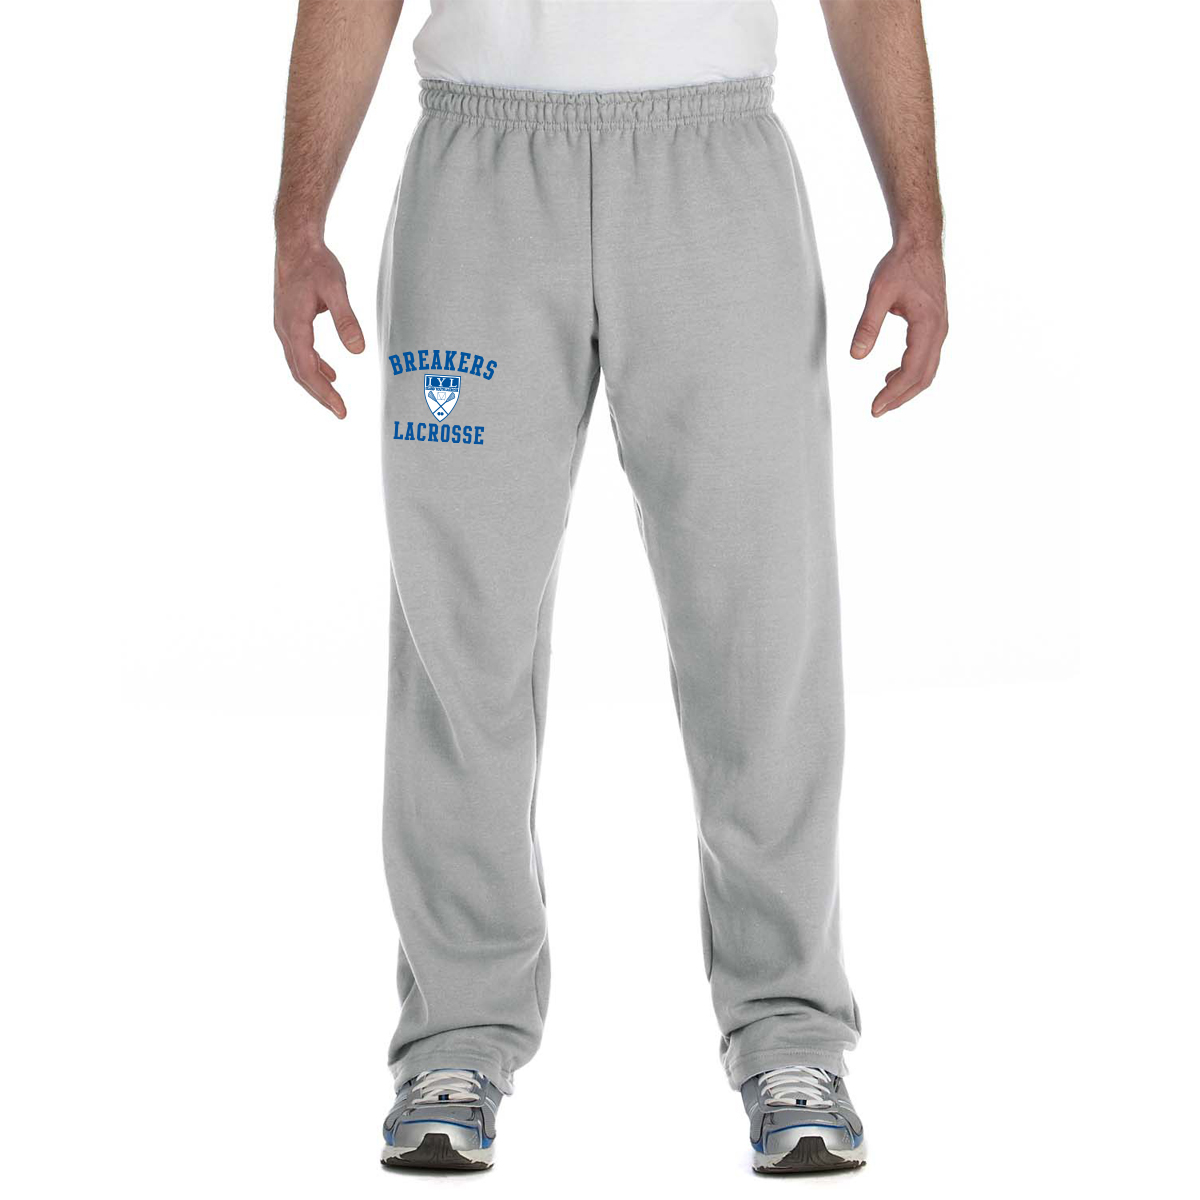 ISLAND YOUTH LACROSSE ADULT SWEATPANTS